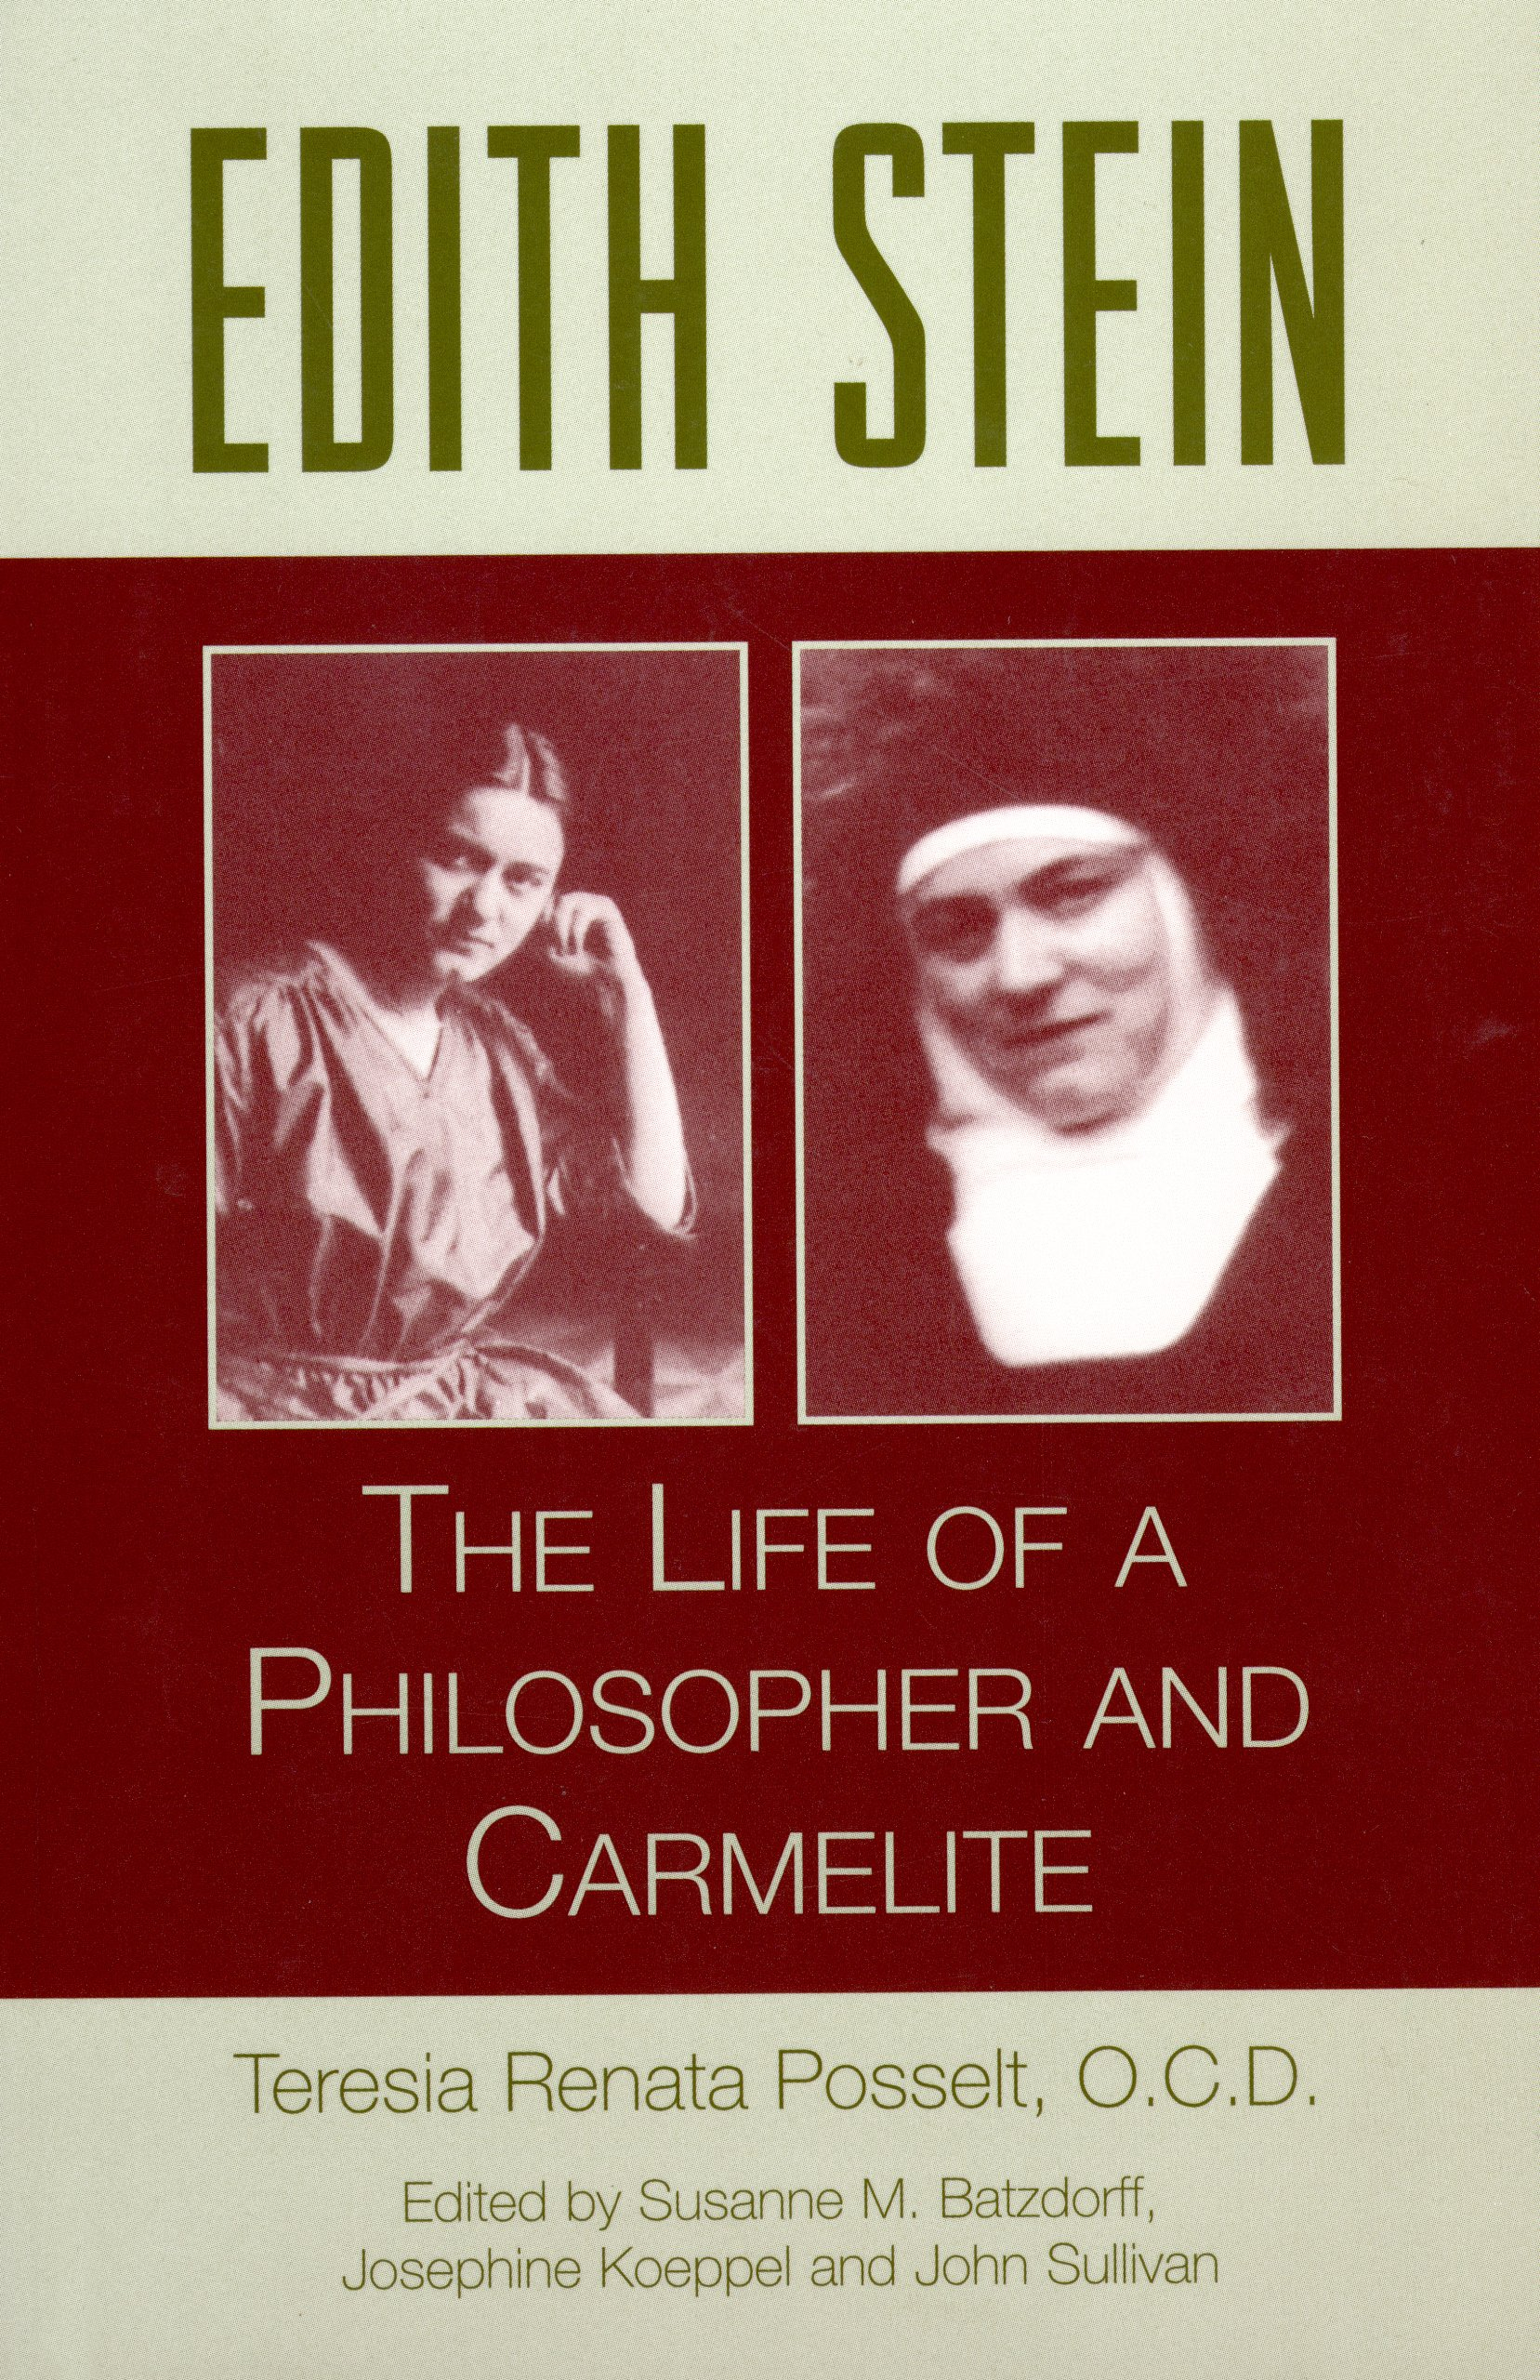 Edith Stein: The Life Of A Philosopher And Carmelite (Collected Works of Edith Stein)